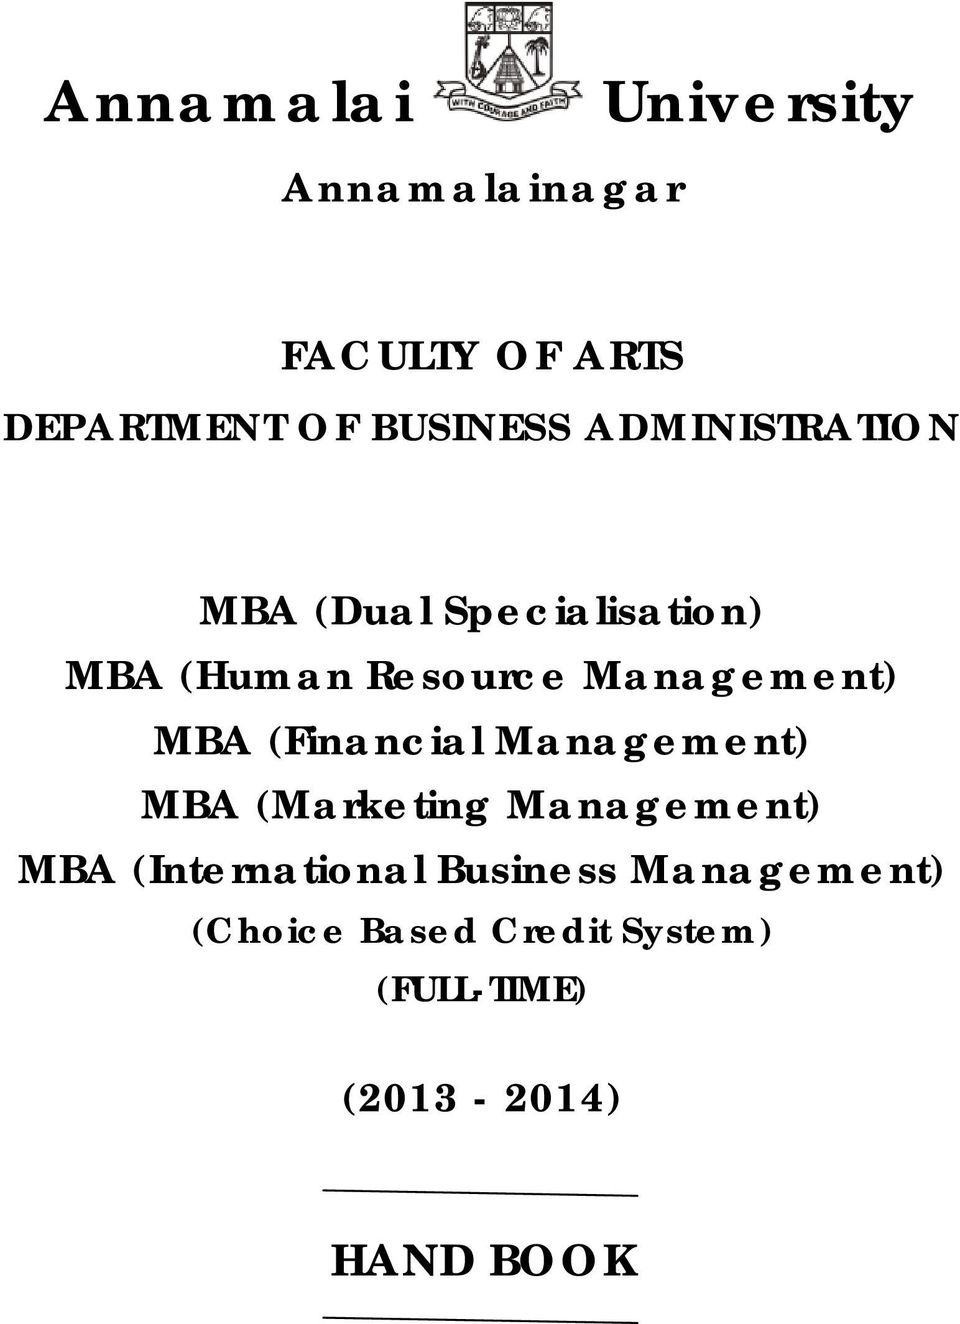 MBA (Financial Management) MBA (Marketing Management) MBA (International